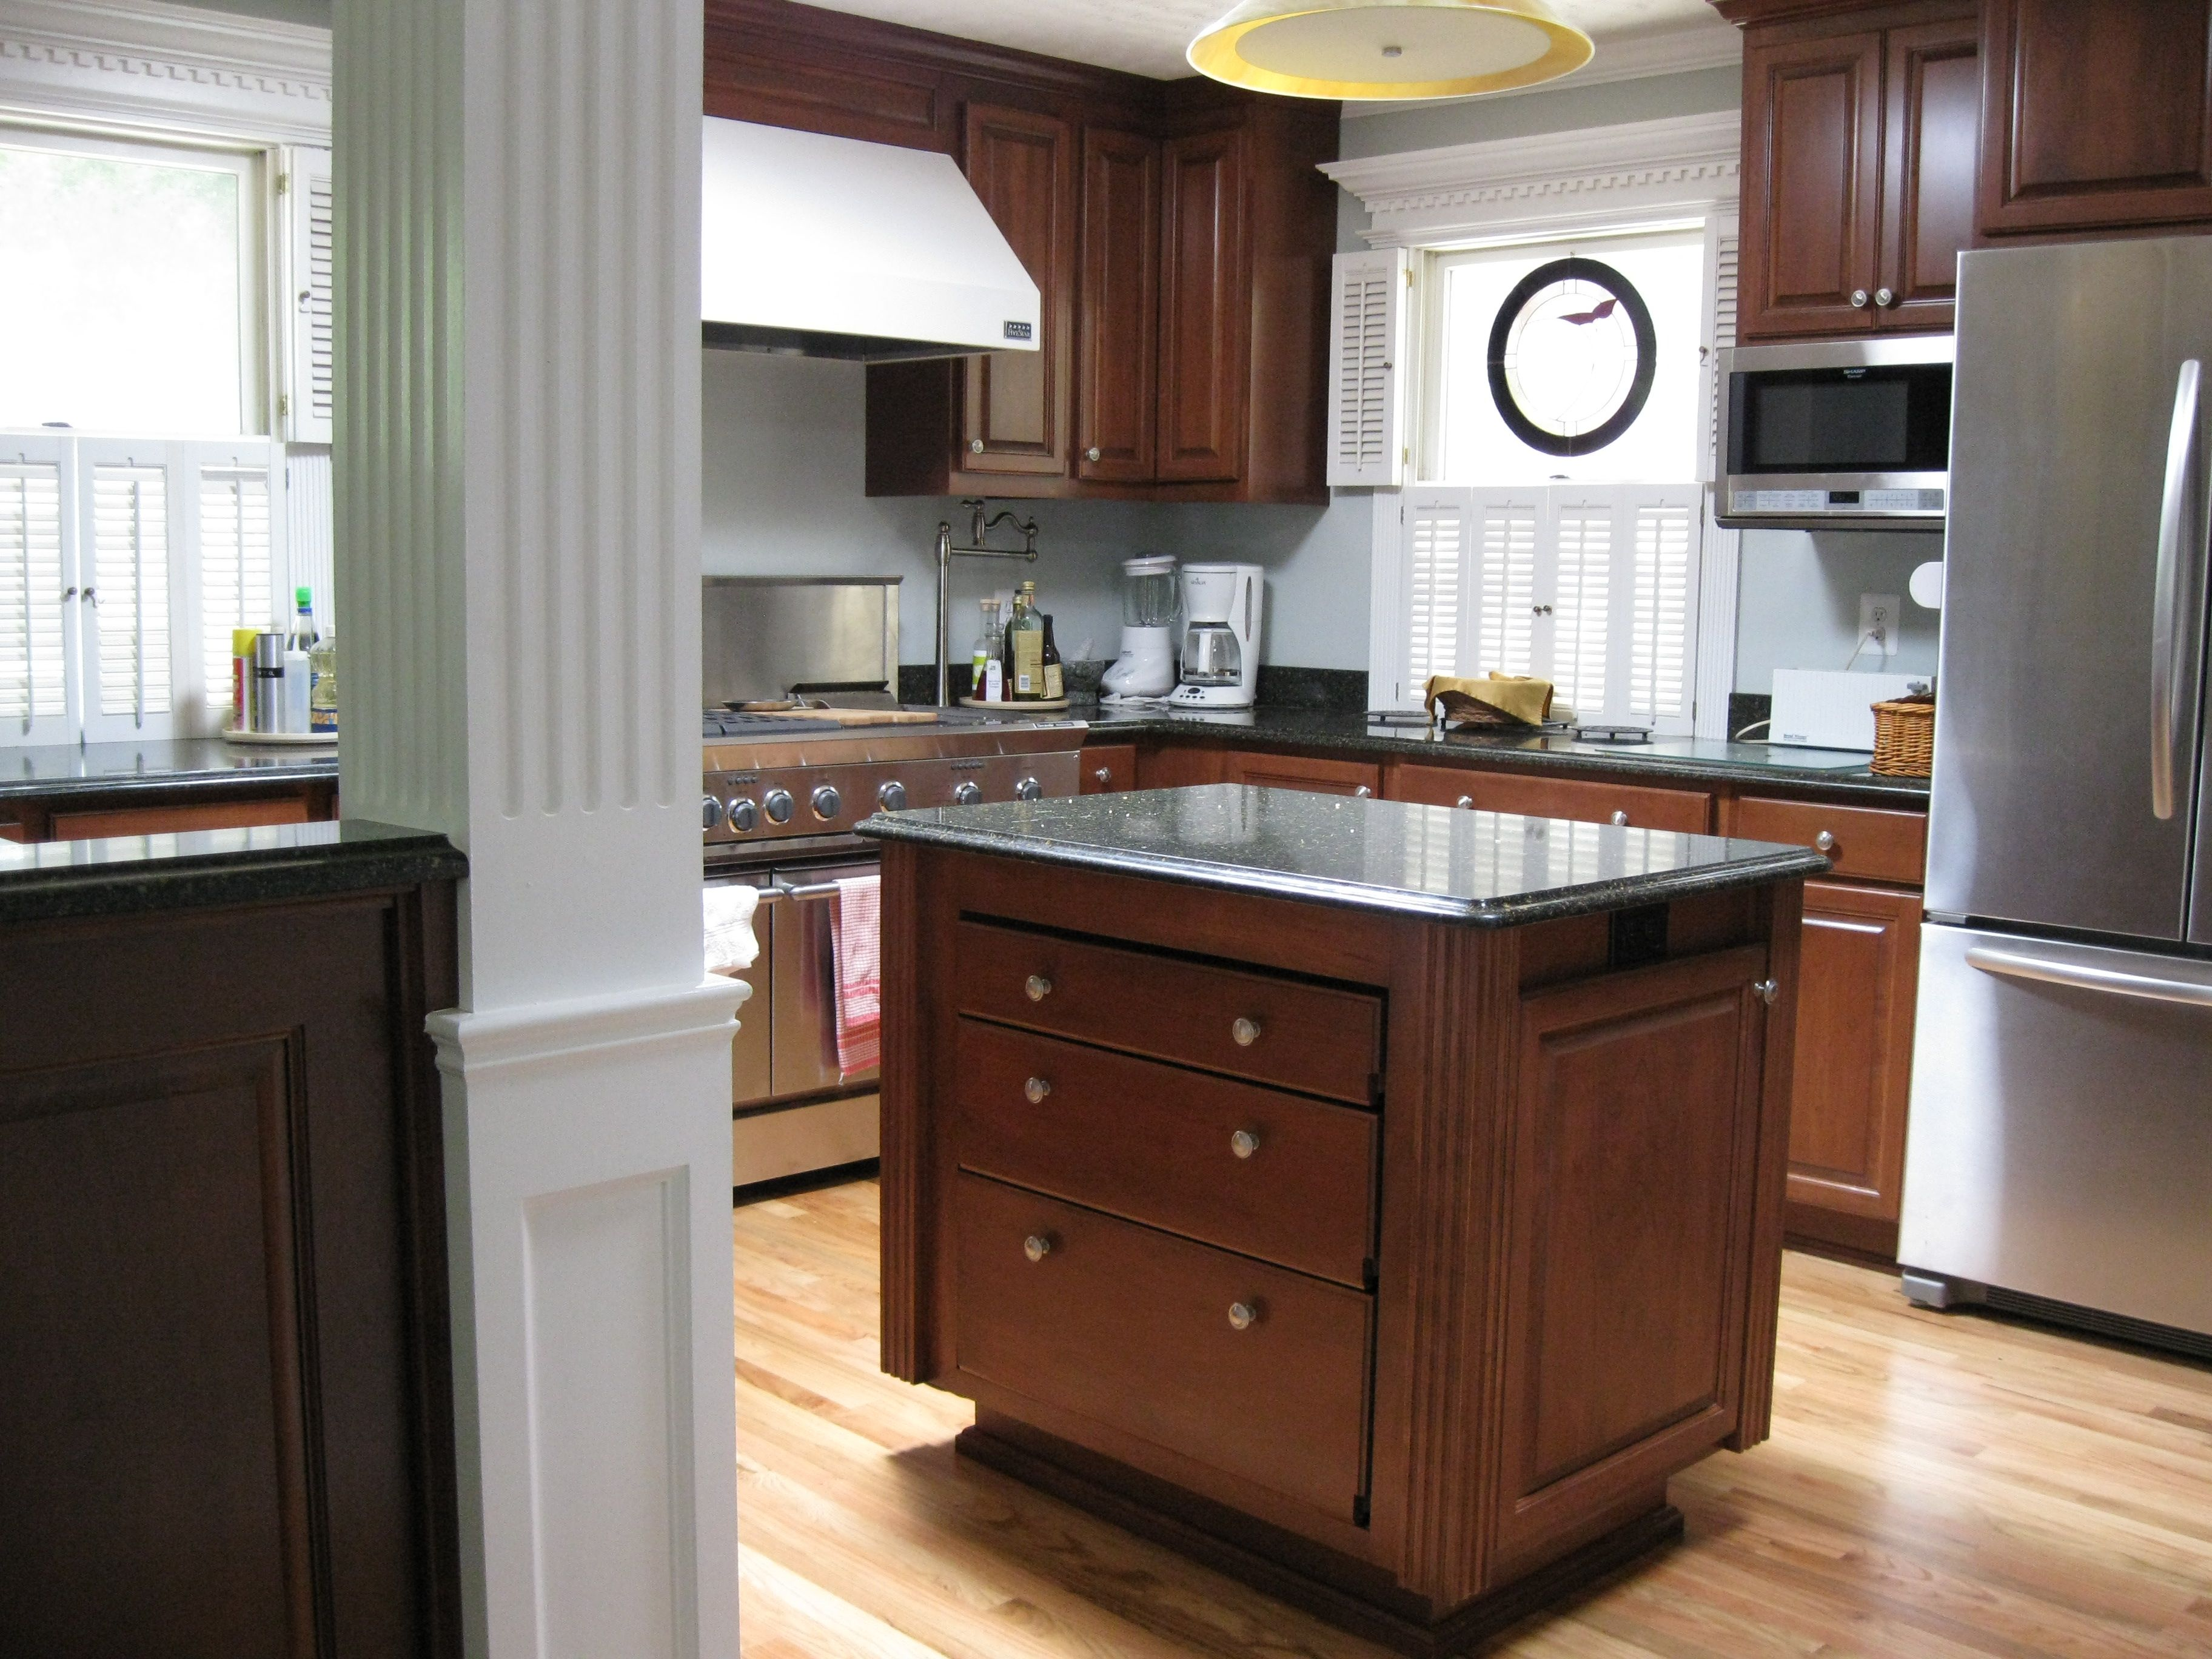 This kitchen is built out of cherry.